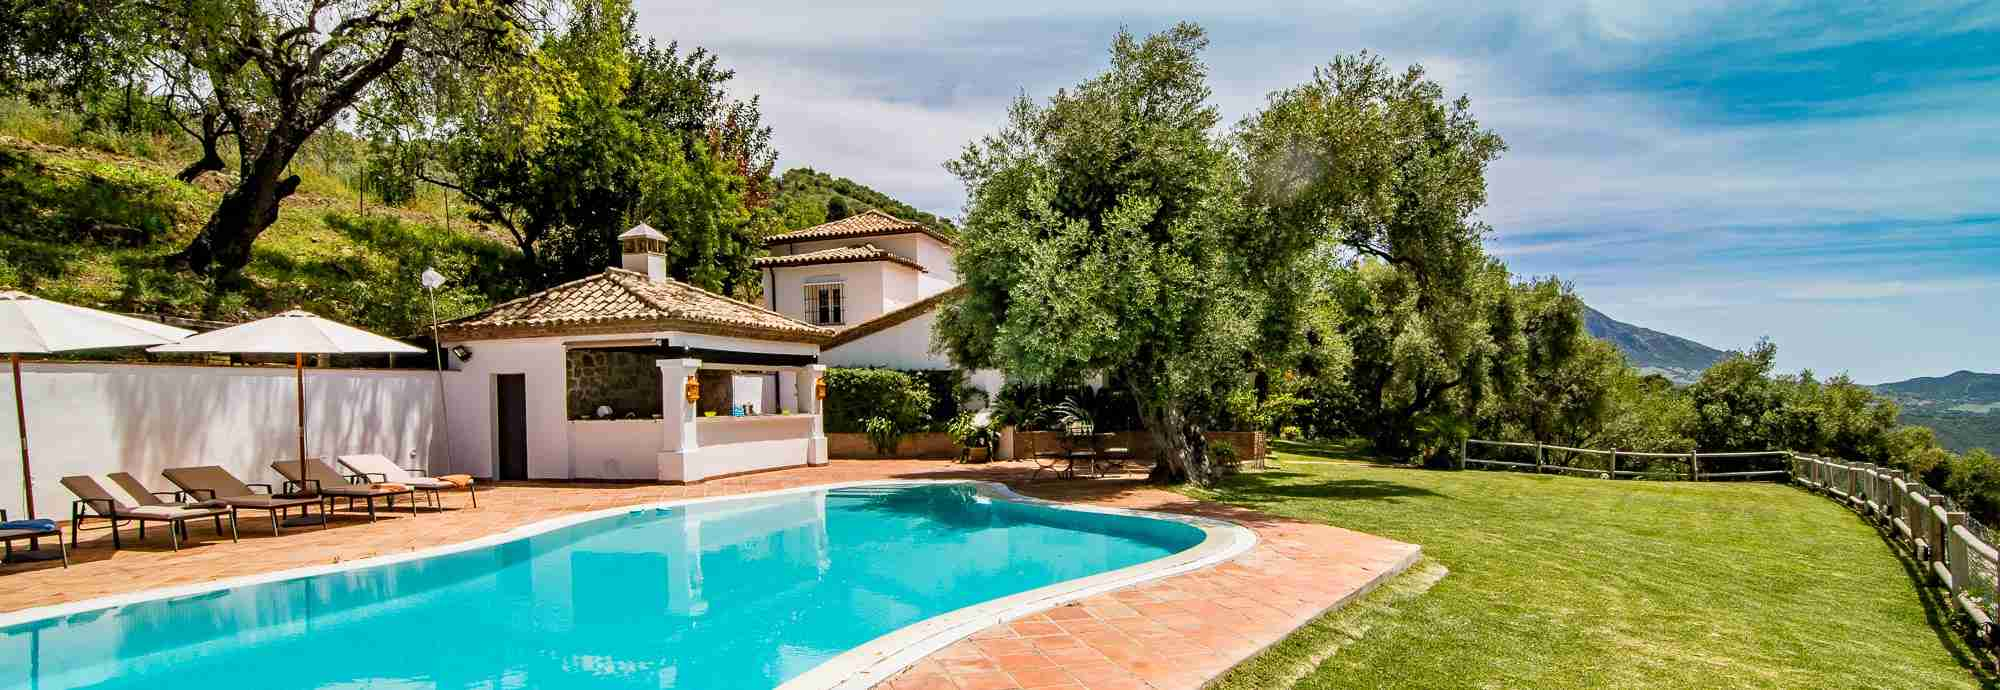 The family favourite: an Andalucia villa with plenty for everyone